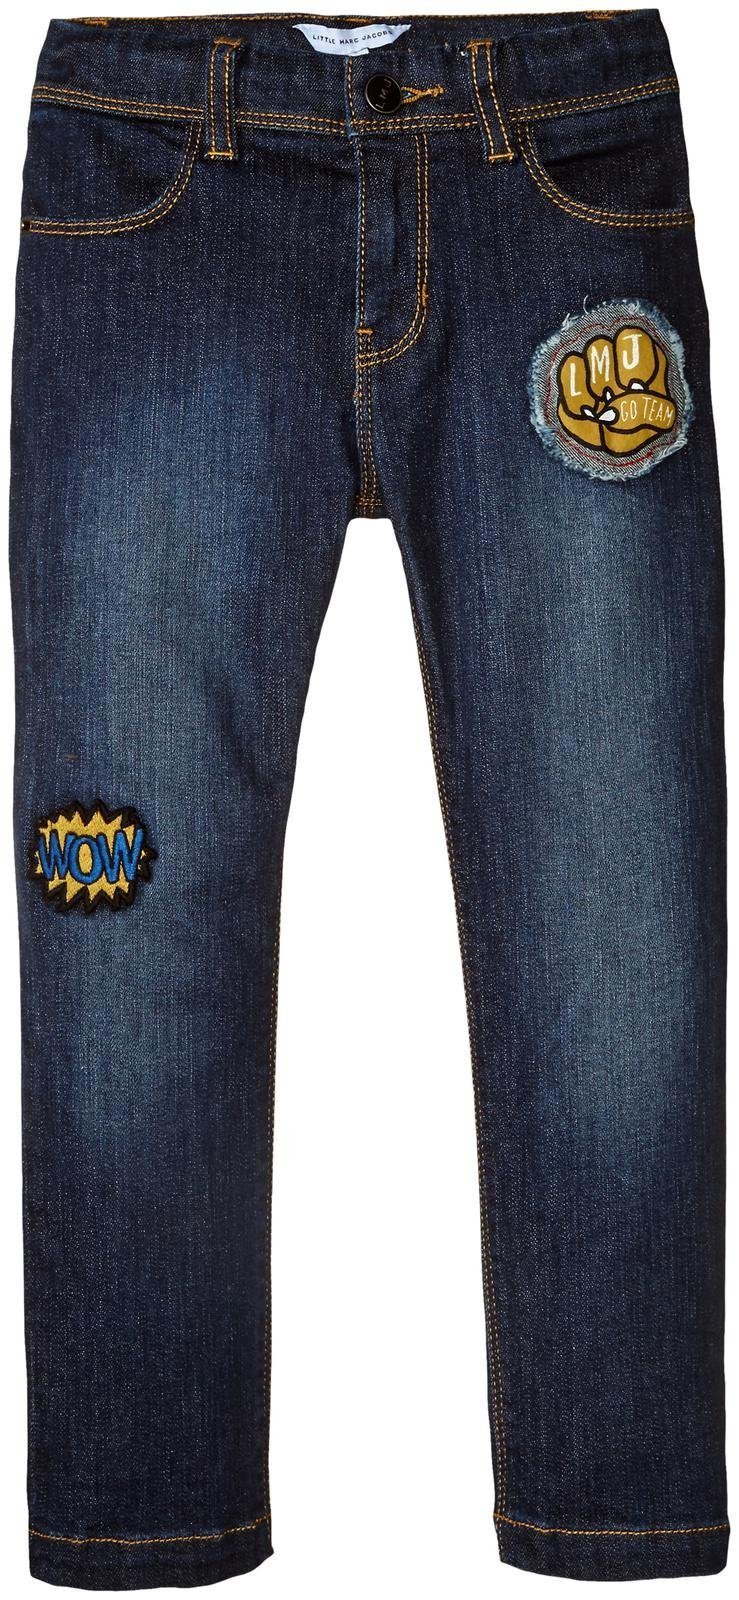 Little Marc Jacobs Boys' Resort-Denim Trousers With Funny Patches, Denim Blue, 12 Big Kids X One Size by Little Marc Jacobs